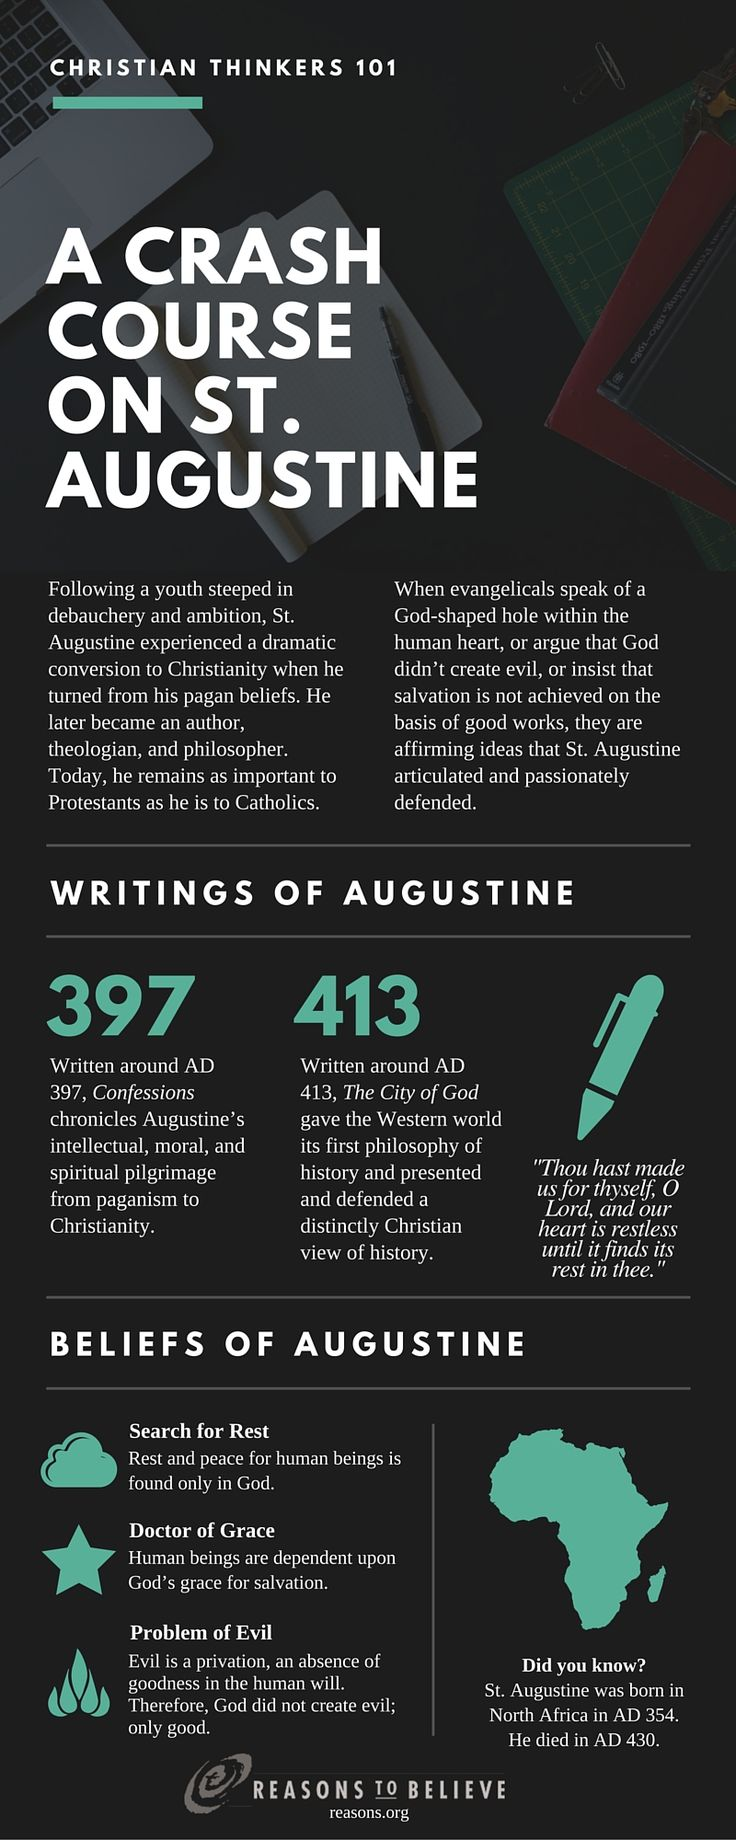 Reasons To Believe : Christian Thinkers 101: A Crash Course on St. Augustine